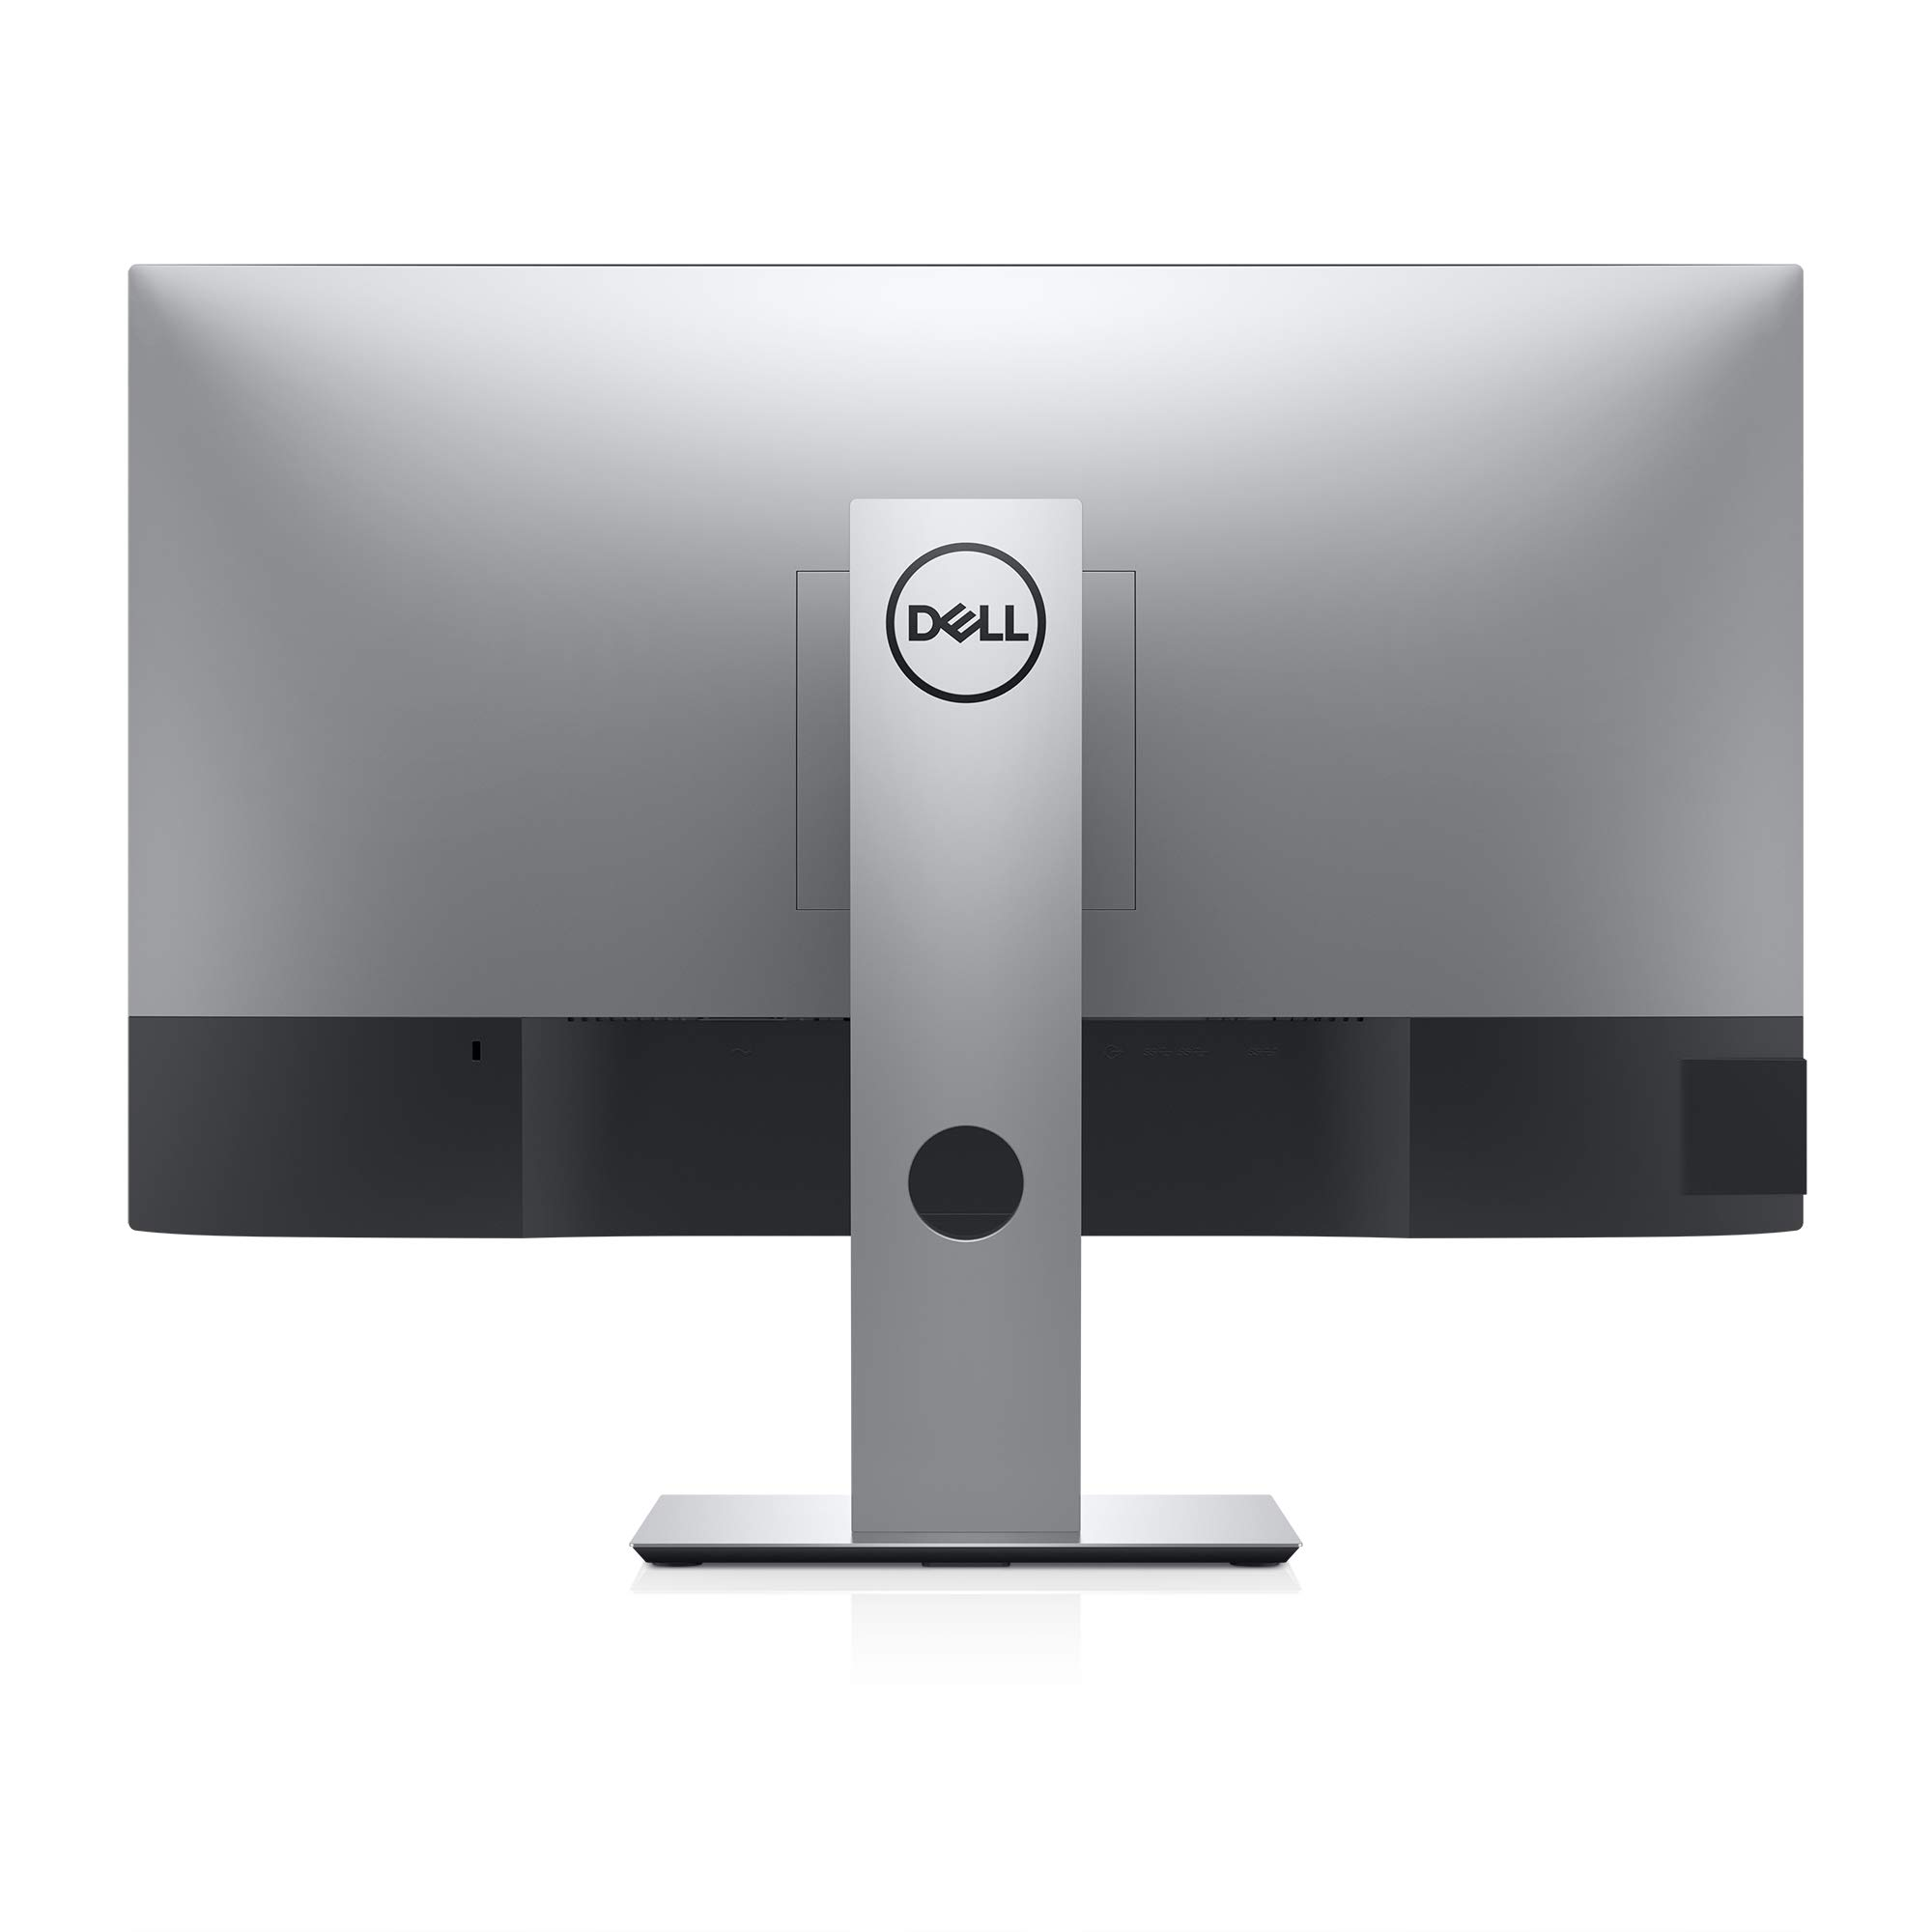 Dell Ultrasharp U2719DX 27-Inch WQHD 2560x1440 Resolution IPS Monitor with Infinity Edge Bezels by Dell (Image #2)